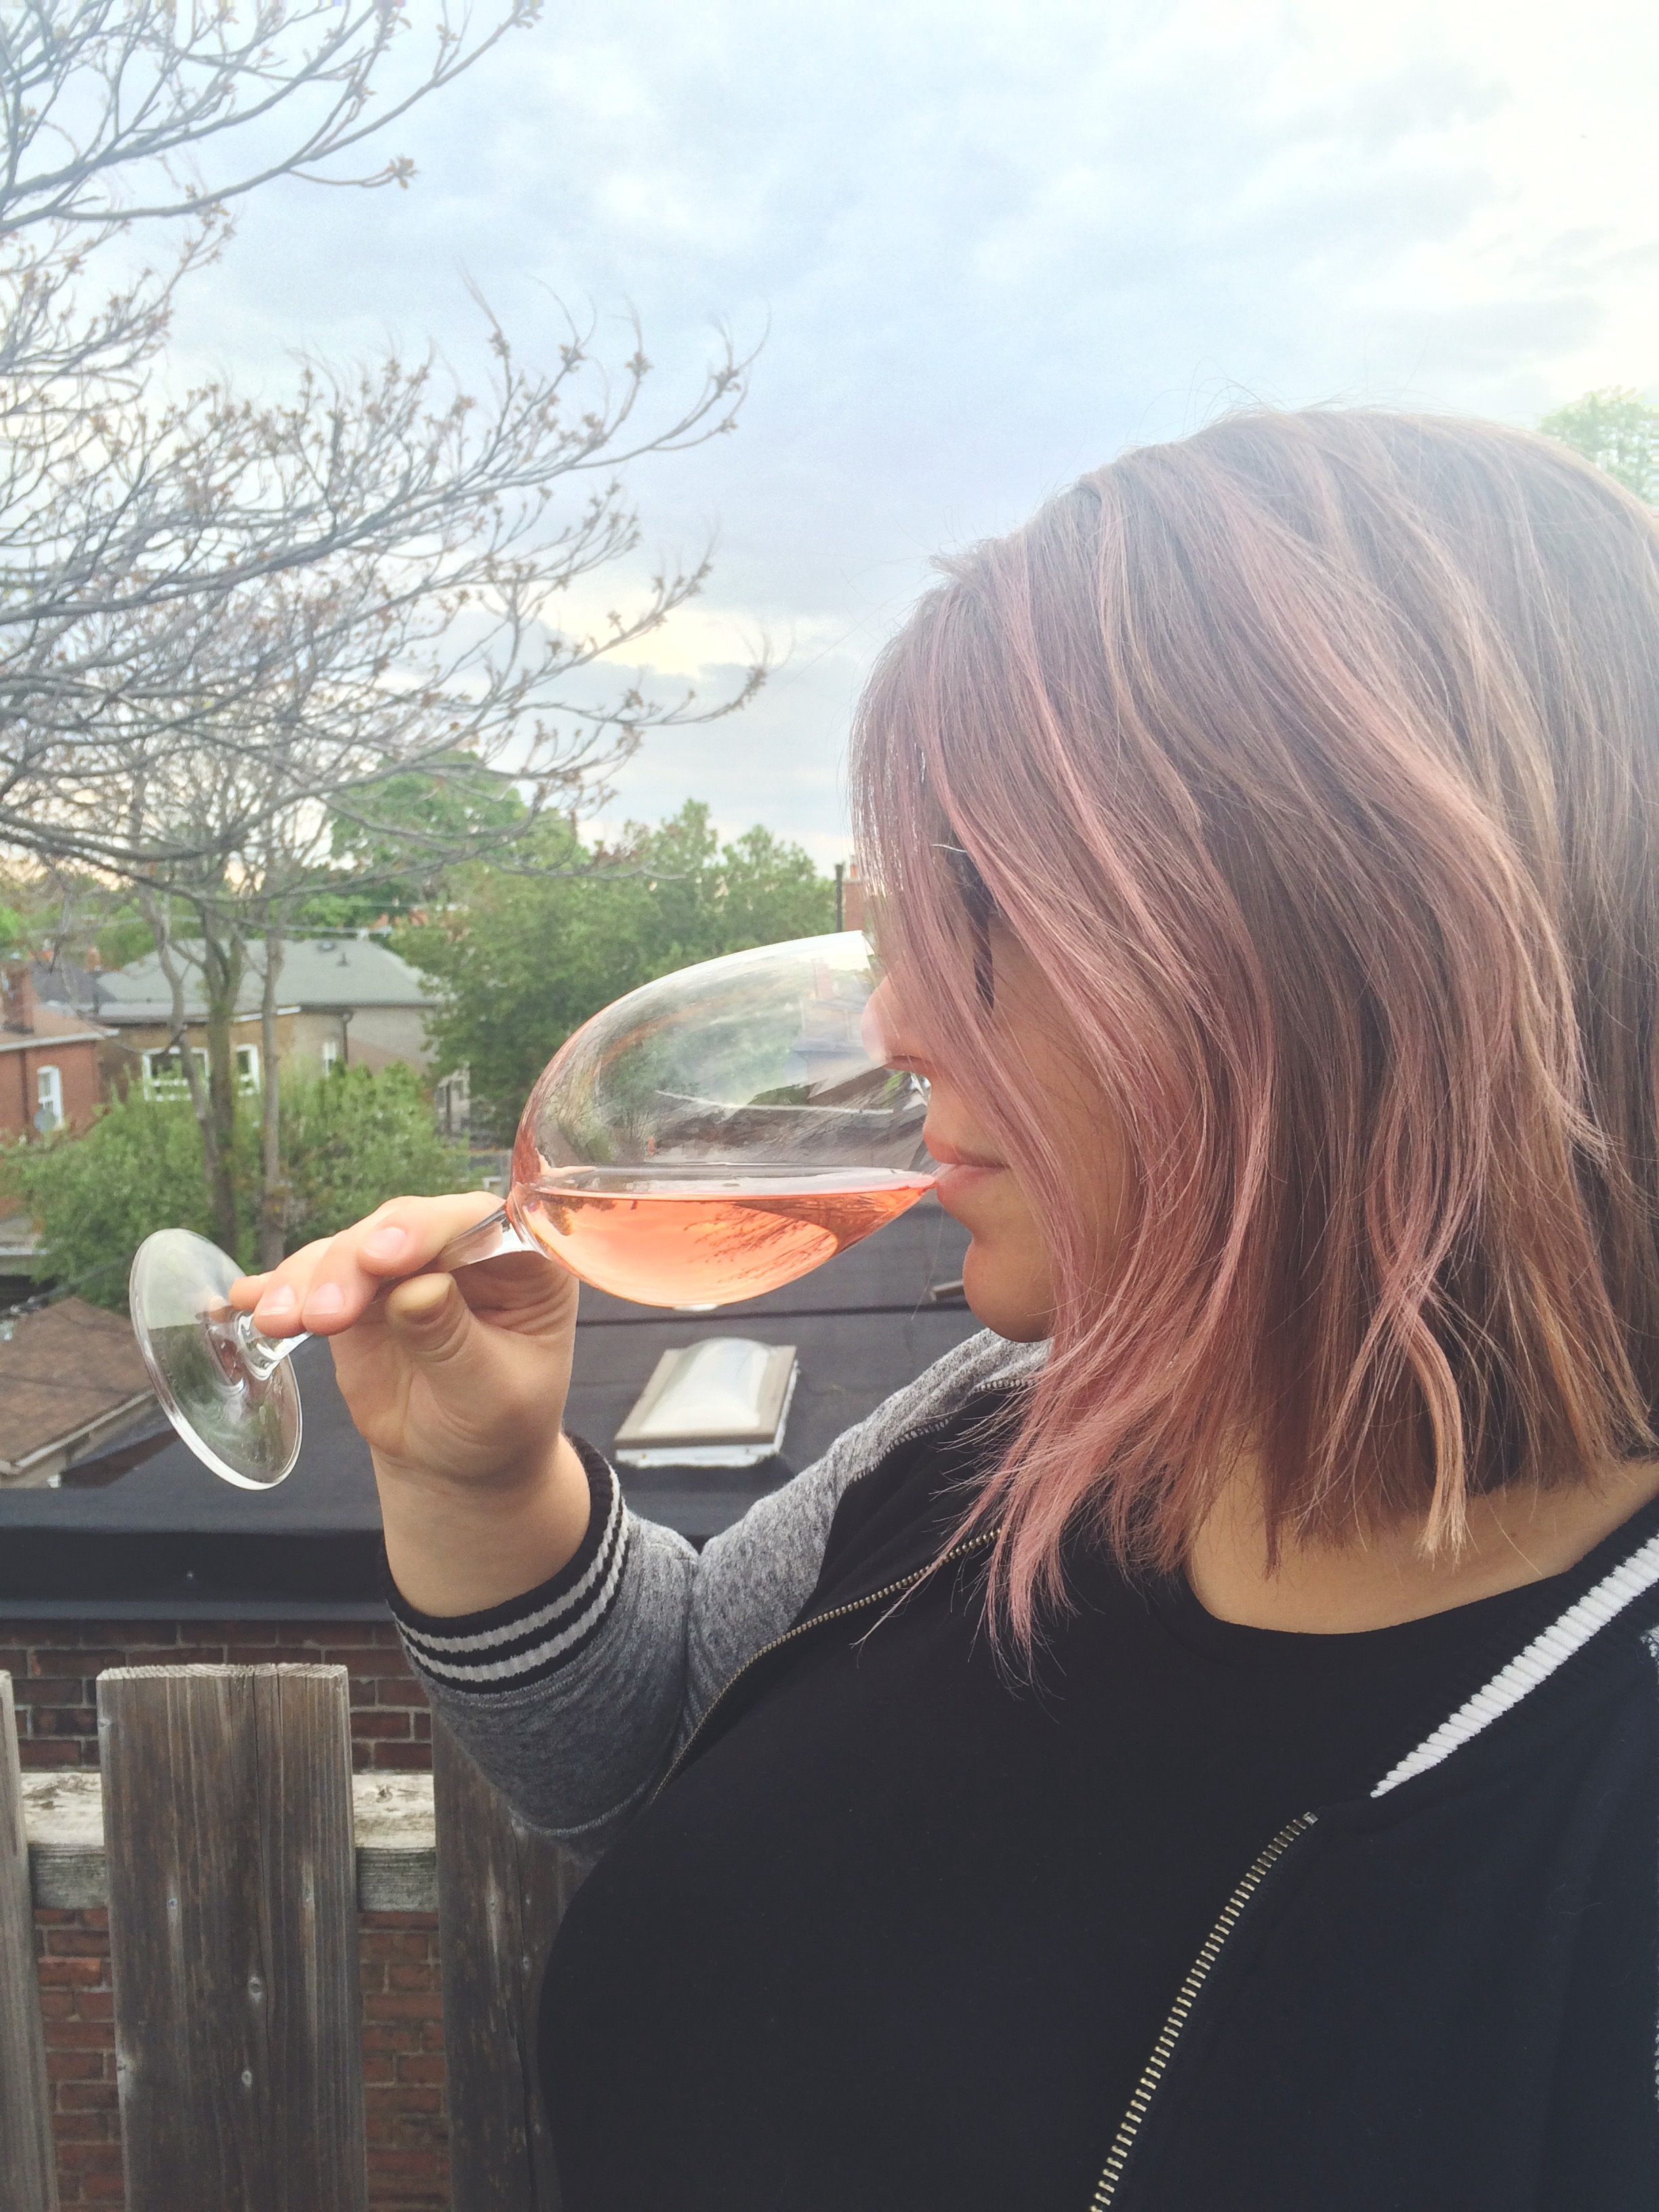 Pro tip: match your hair to the colour wine you're drinking a la Dyanna.